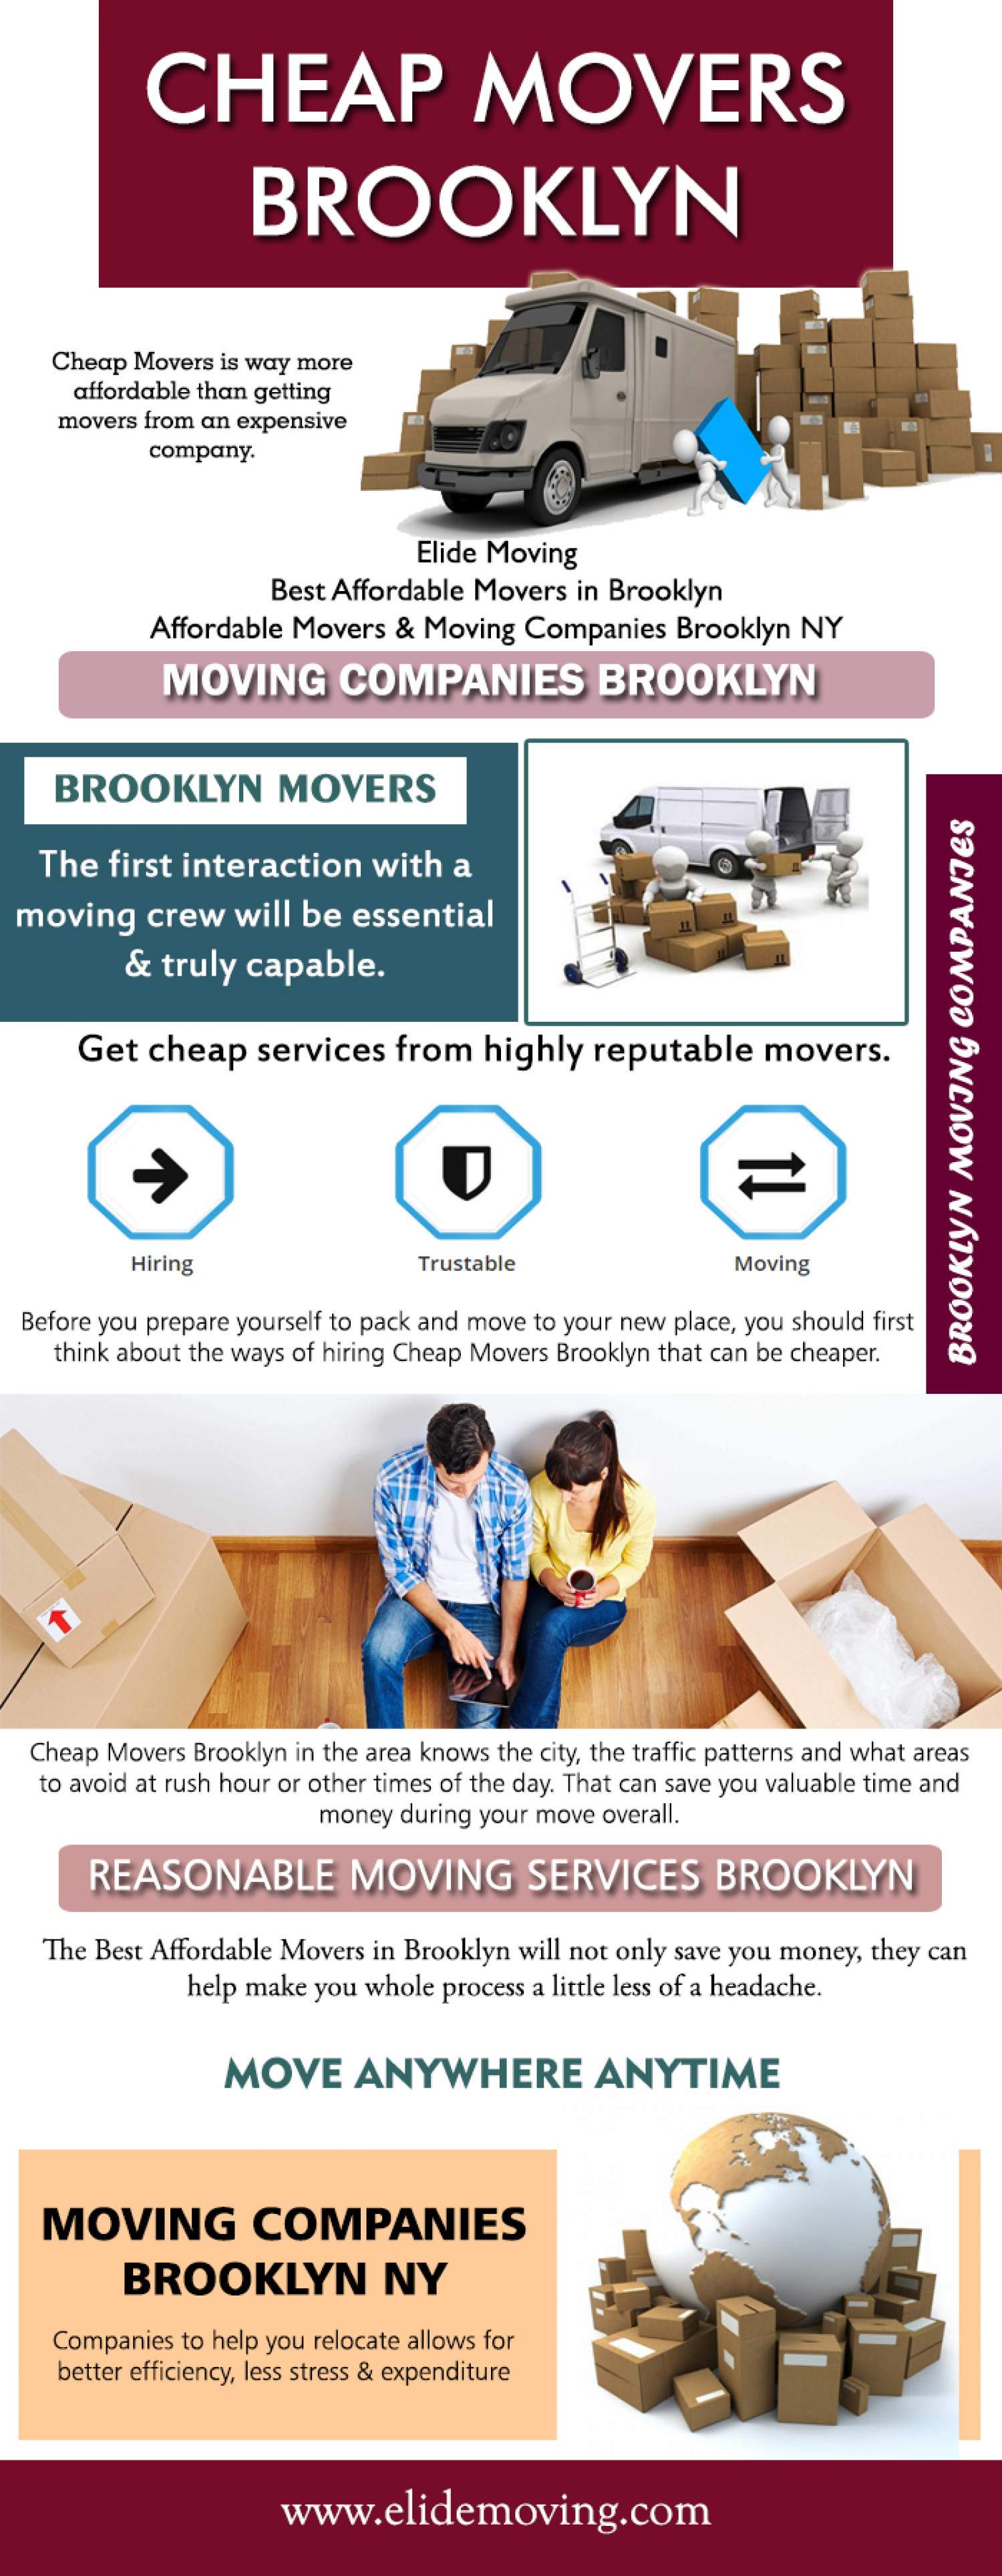 Movers Brooklyn Infographic